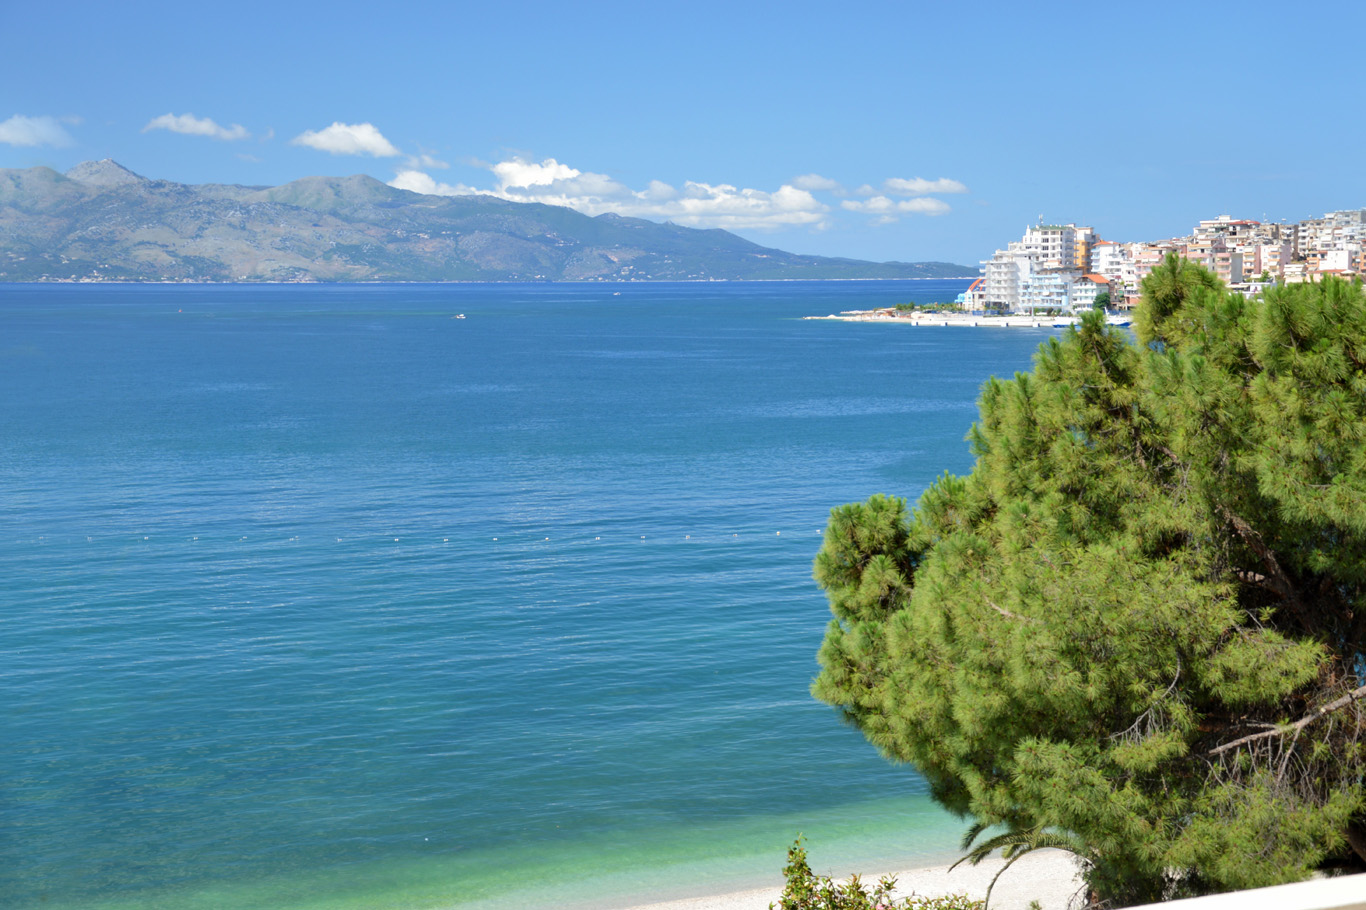 Ionian Sea and Corfu - view from Sarande